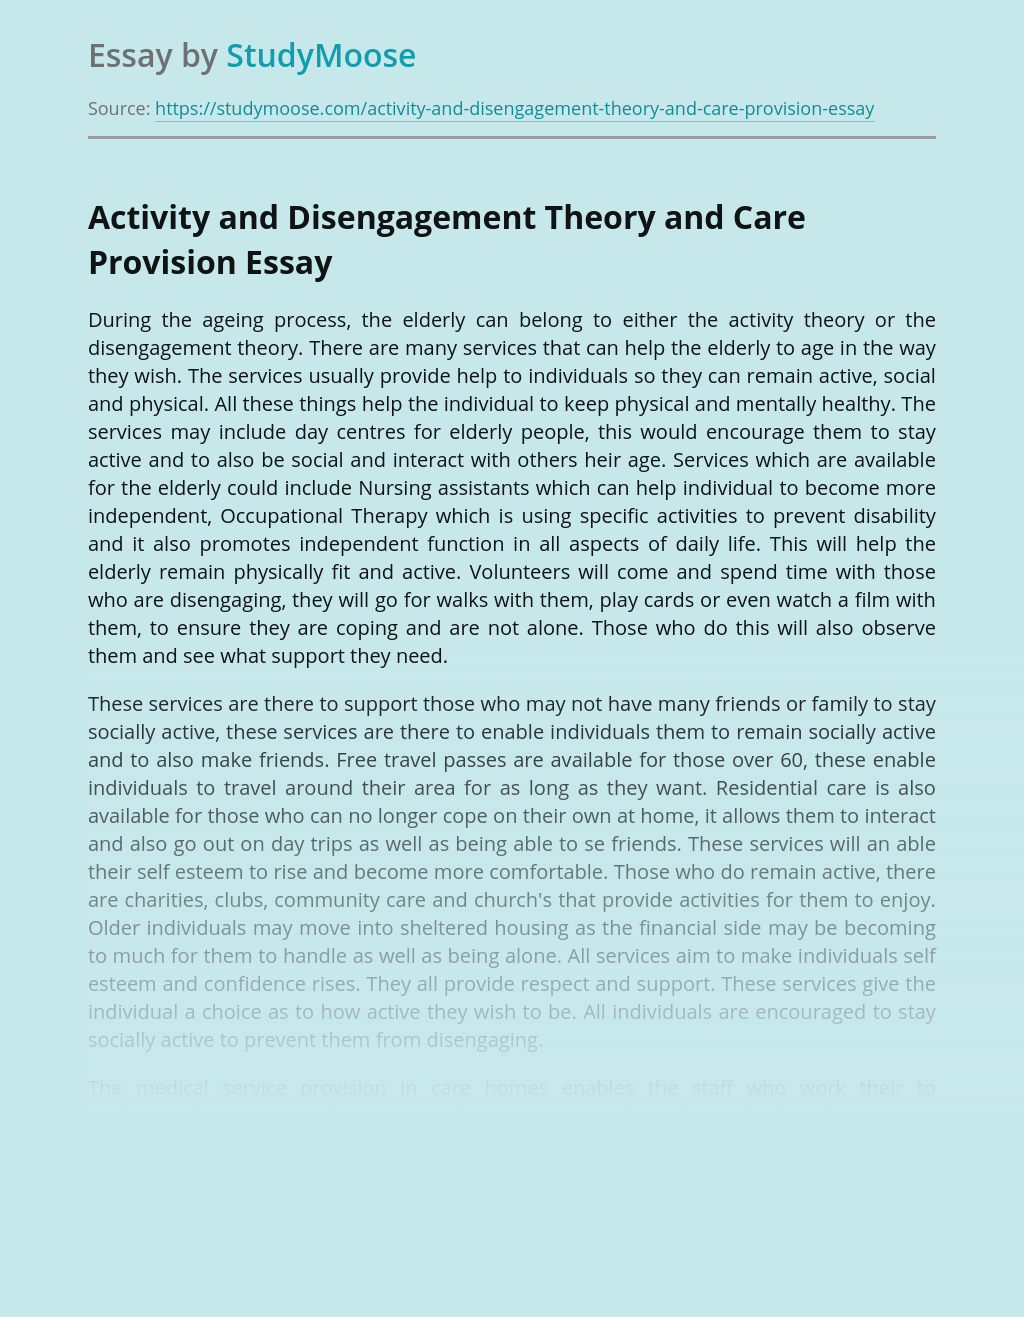 Activity and Disengagement Theory and Care Provision